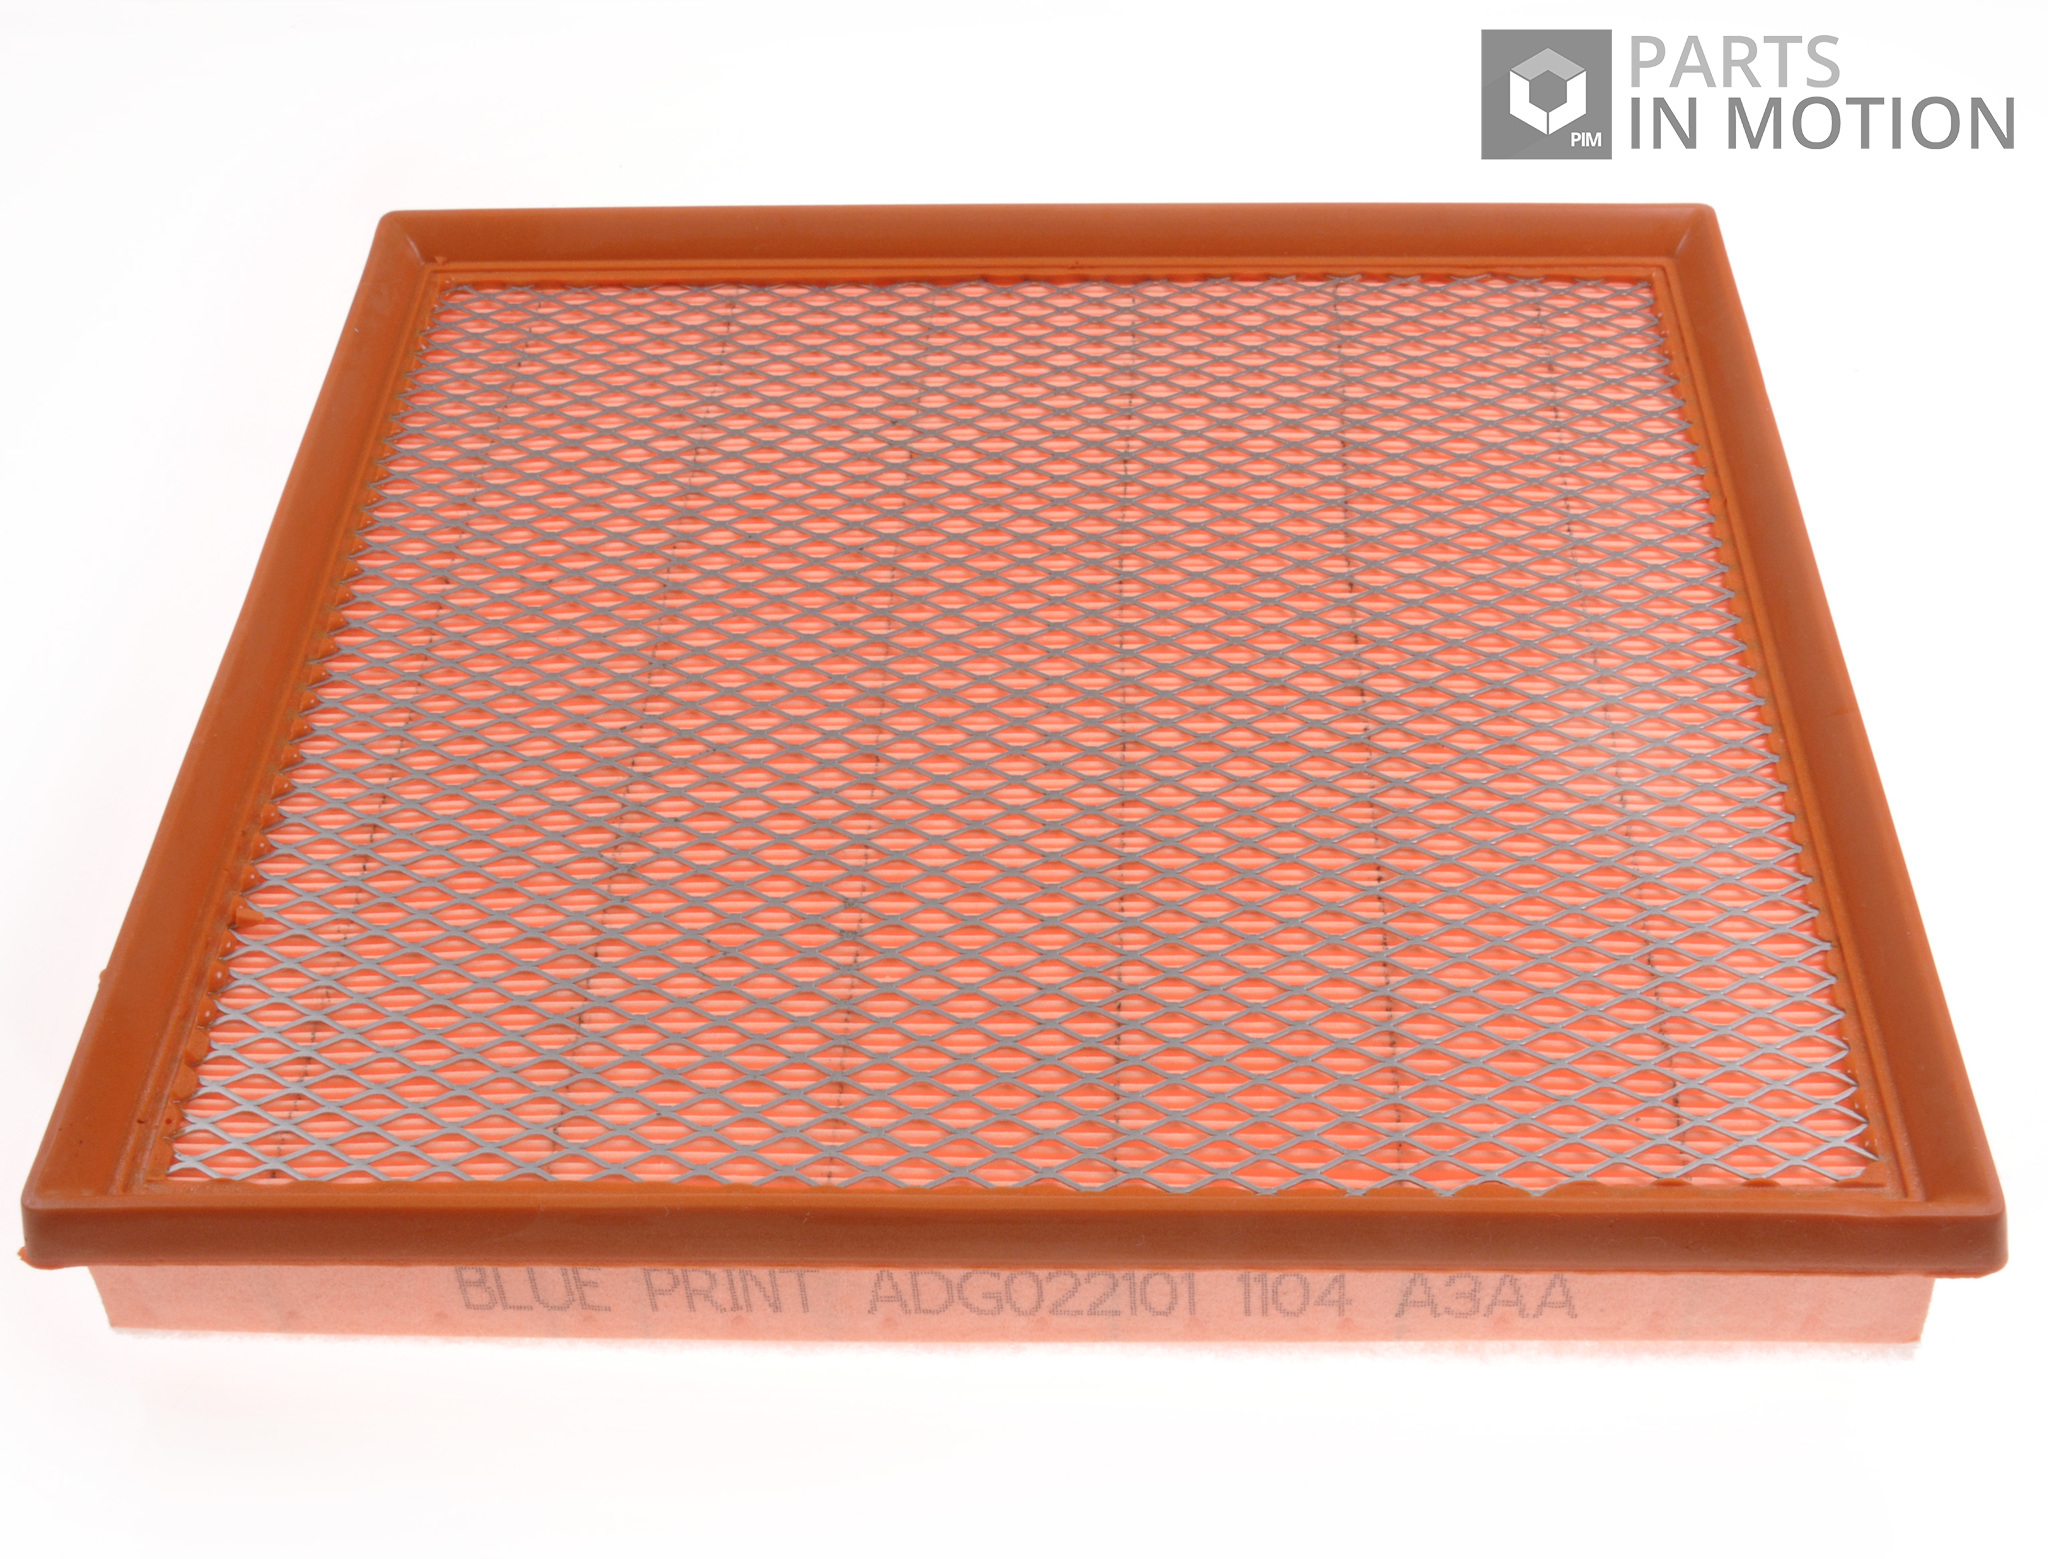 CHEVROLET CRUZE J305 1.4 Air Filter 13 to 15 Bosch 13272719 Quality Replacement